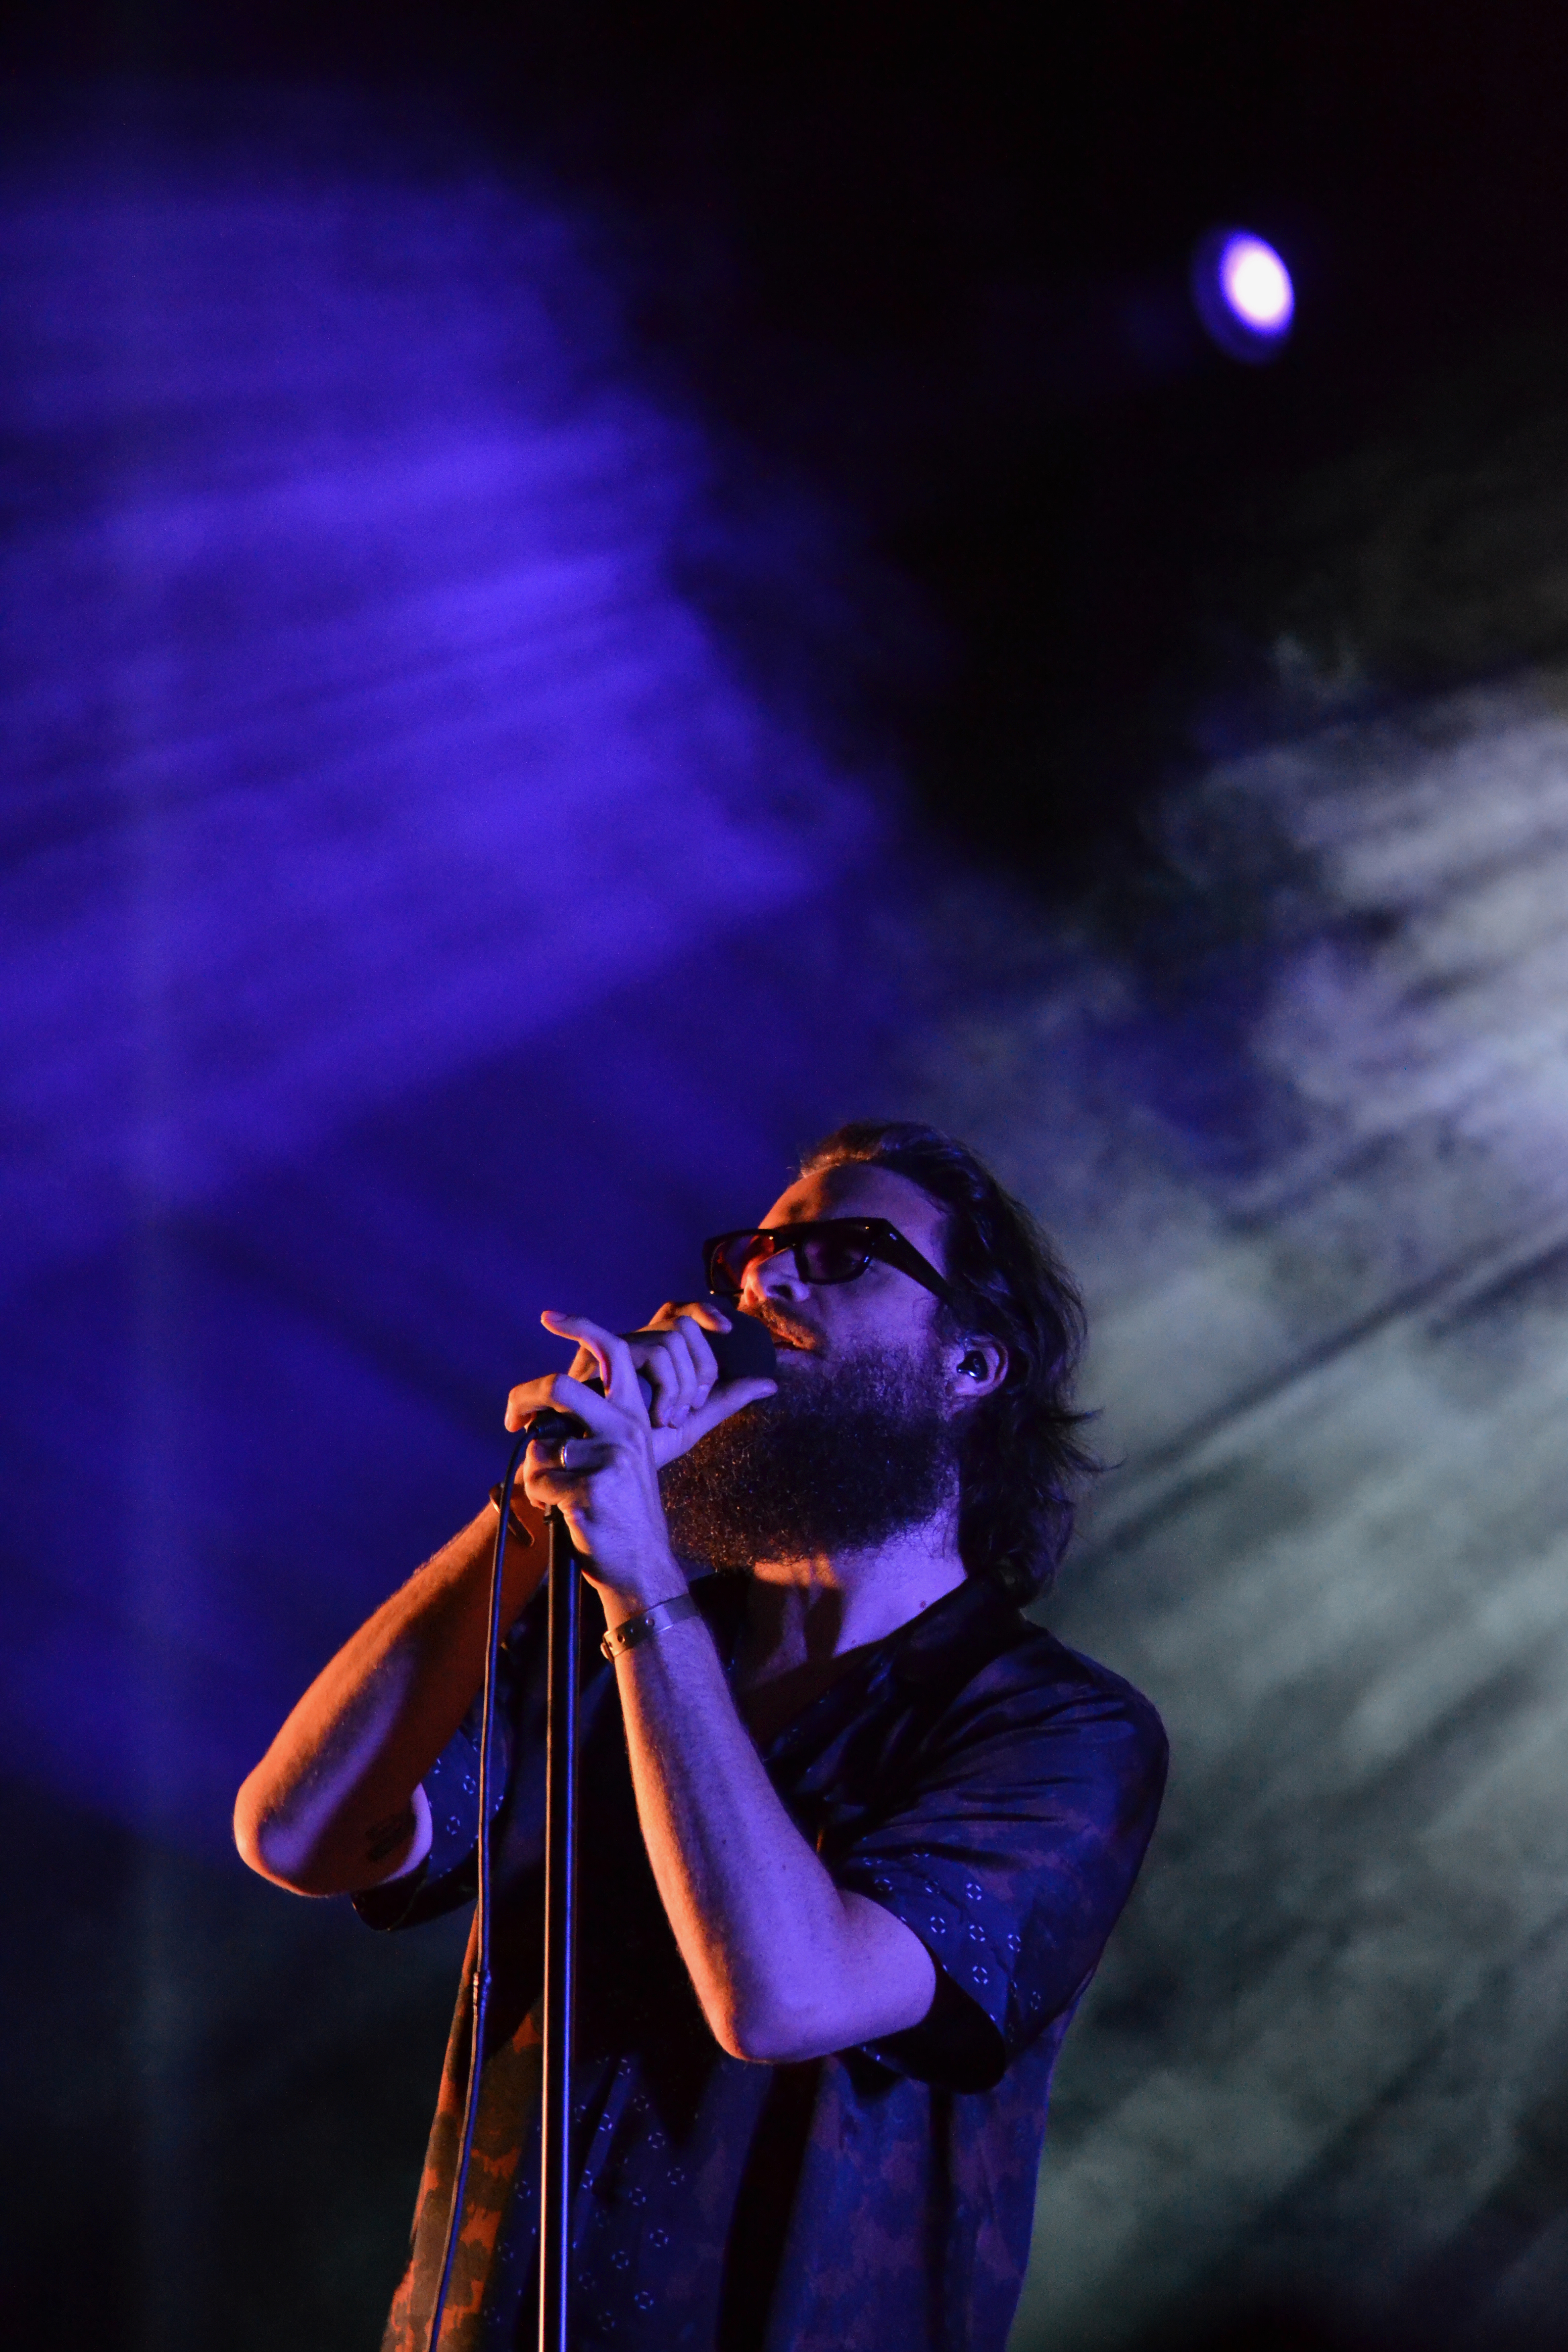 Father John Misty performs April 29, 2018 at Fortress Festival in Fort Worth.